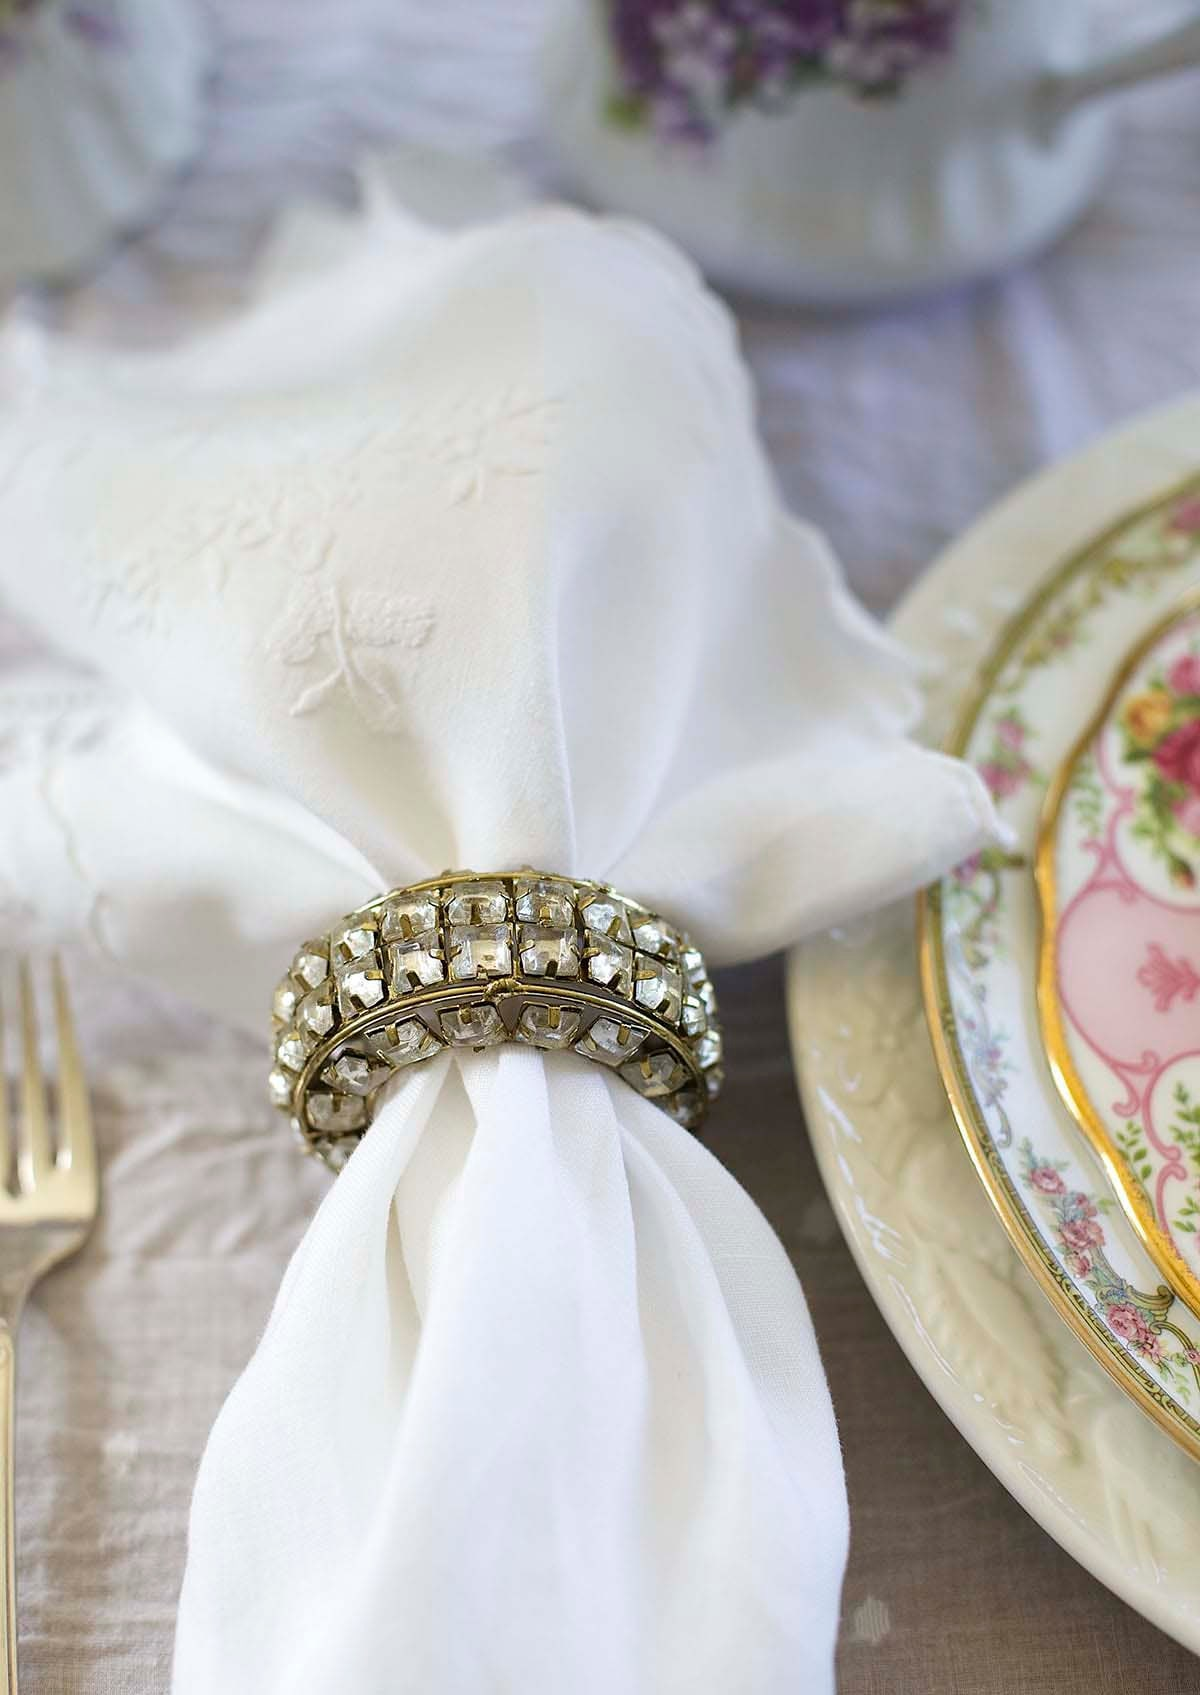 A bit of Hollywood sparkle and glam with accessories like these crystal napkin rings.